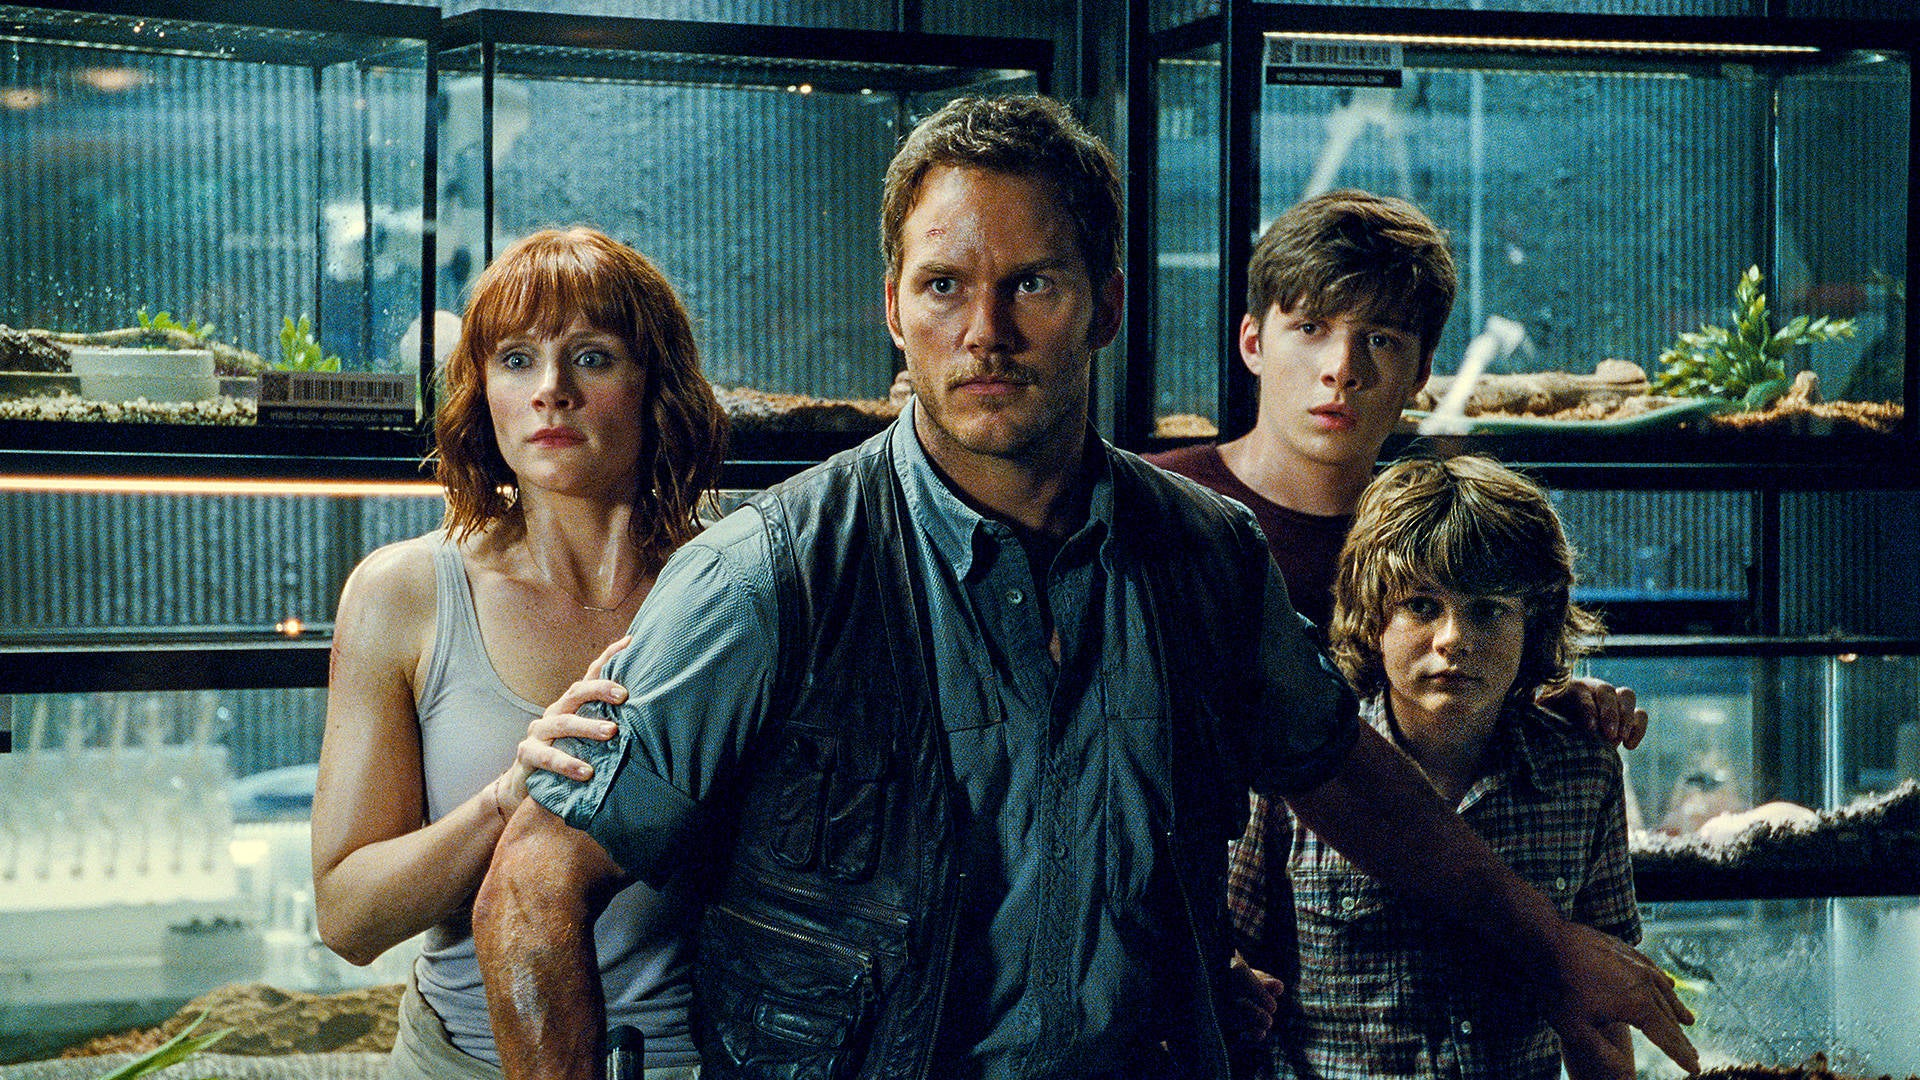 'Jurassic World' Sequel Gets Official Title, First Poster